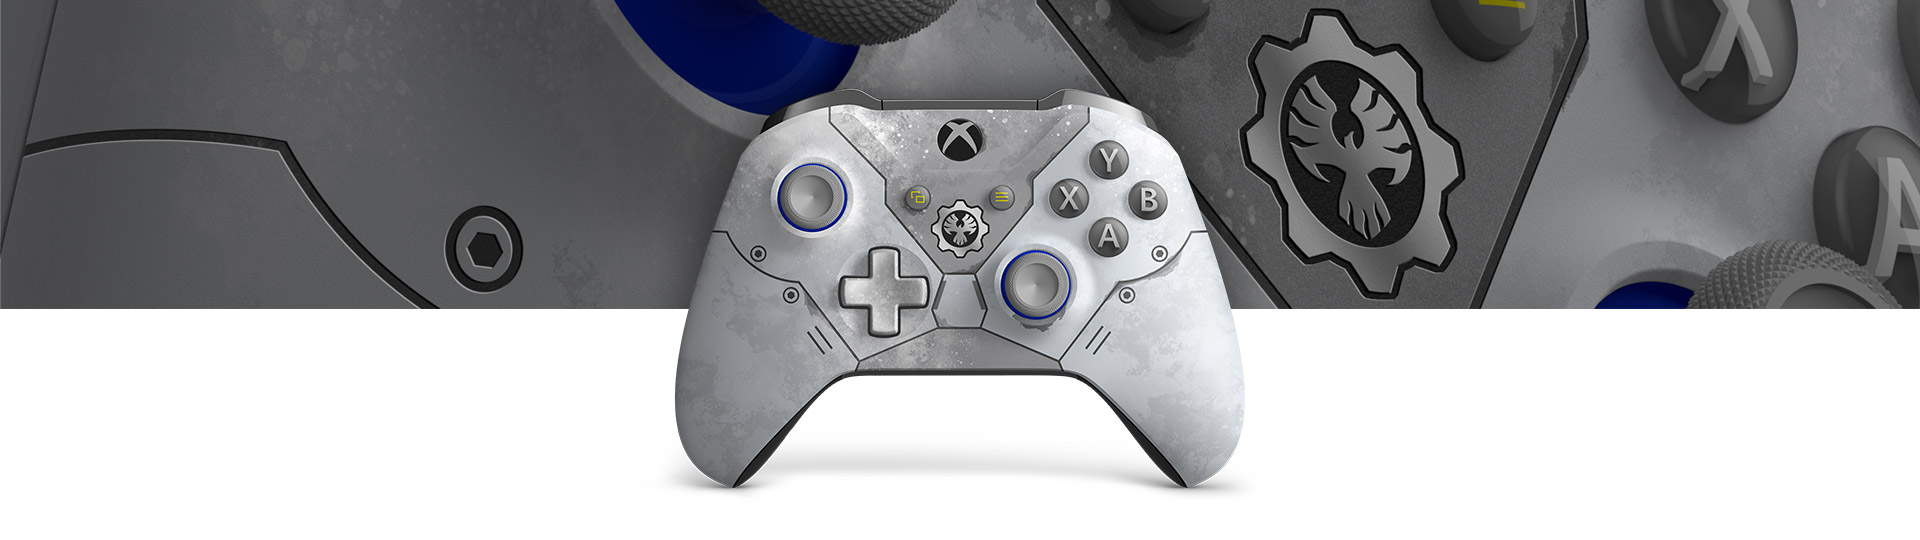 Front view of Xbox Wireless Controller – Gears 5 Kait Diaz Limited Edition with a close-up of sport red controller surface texture